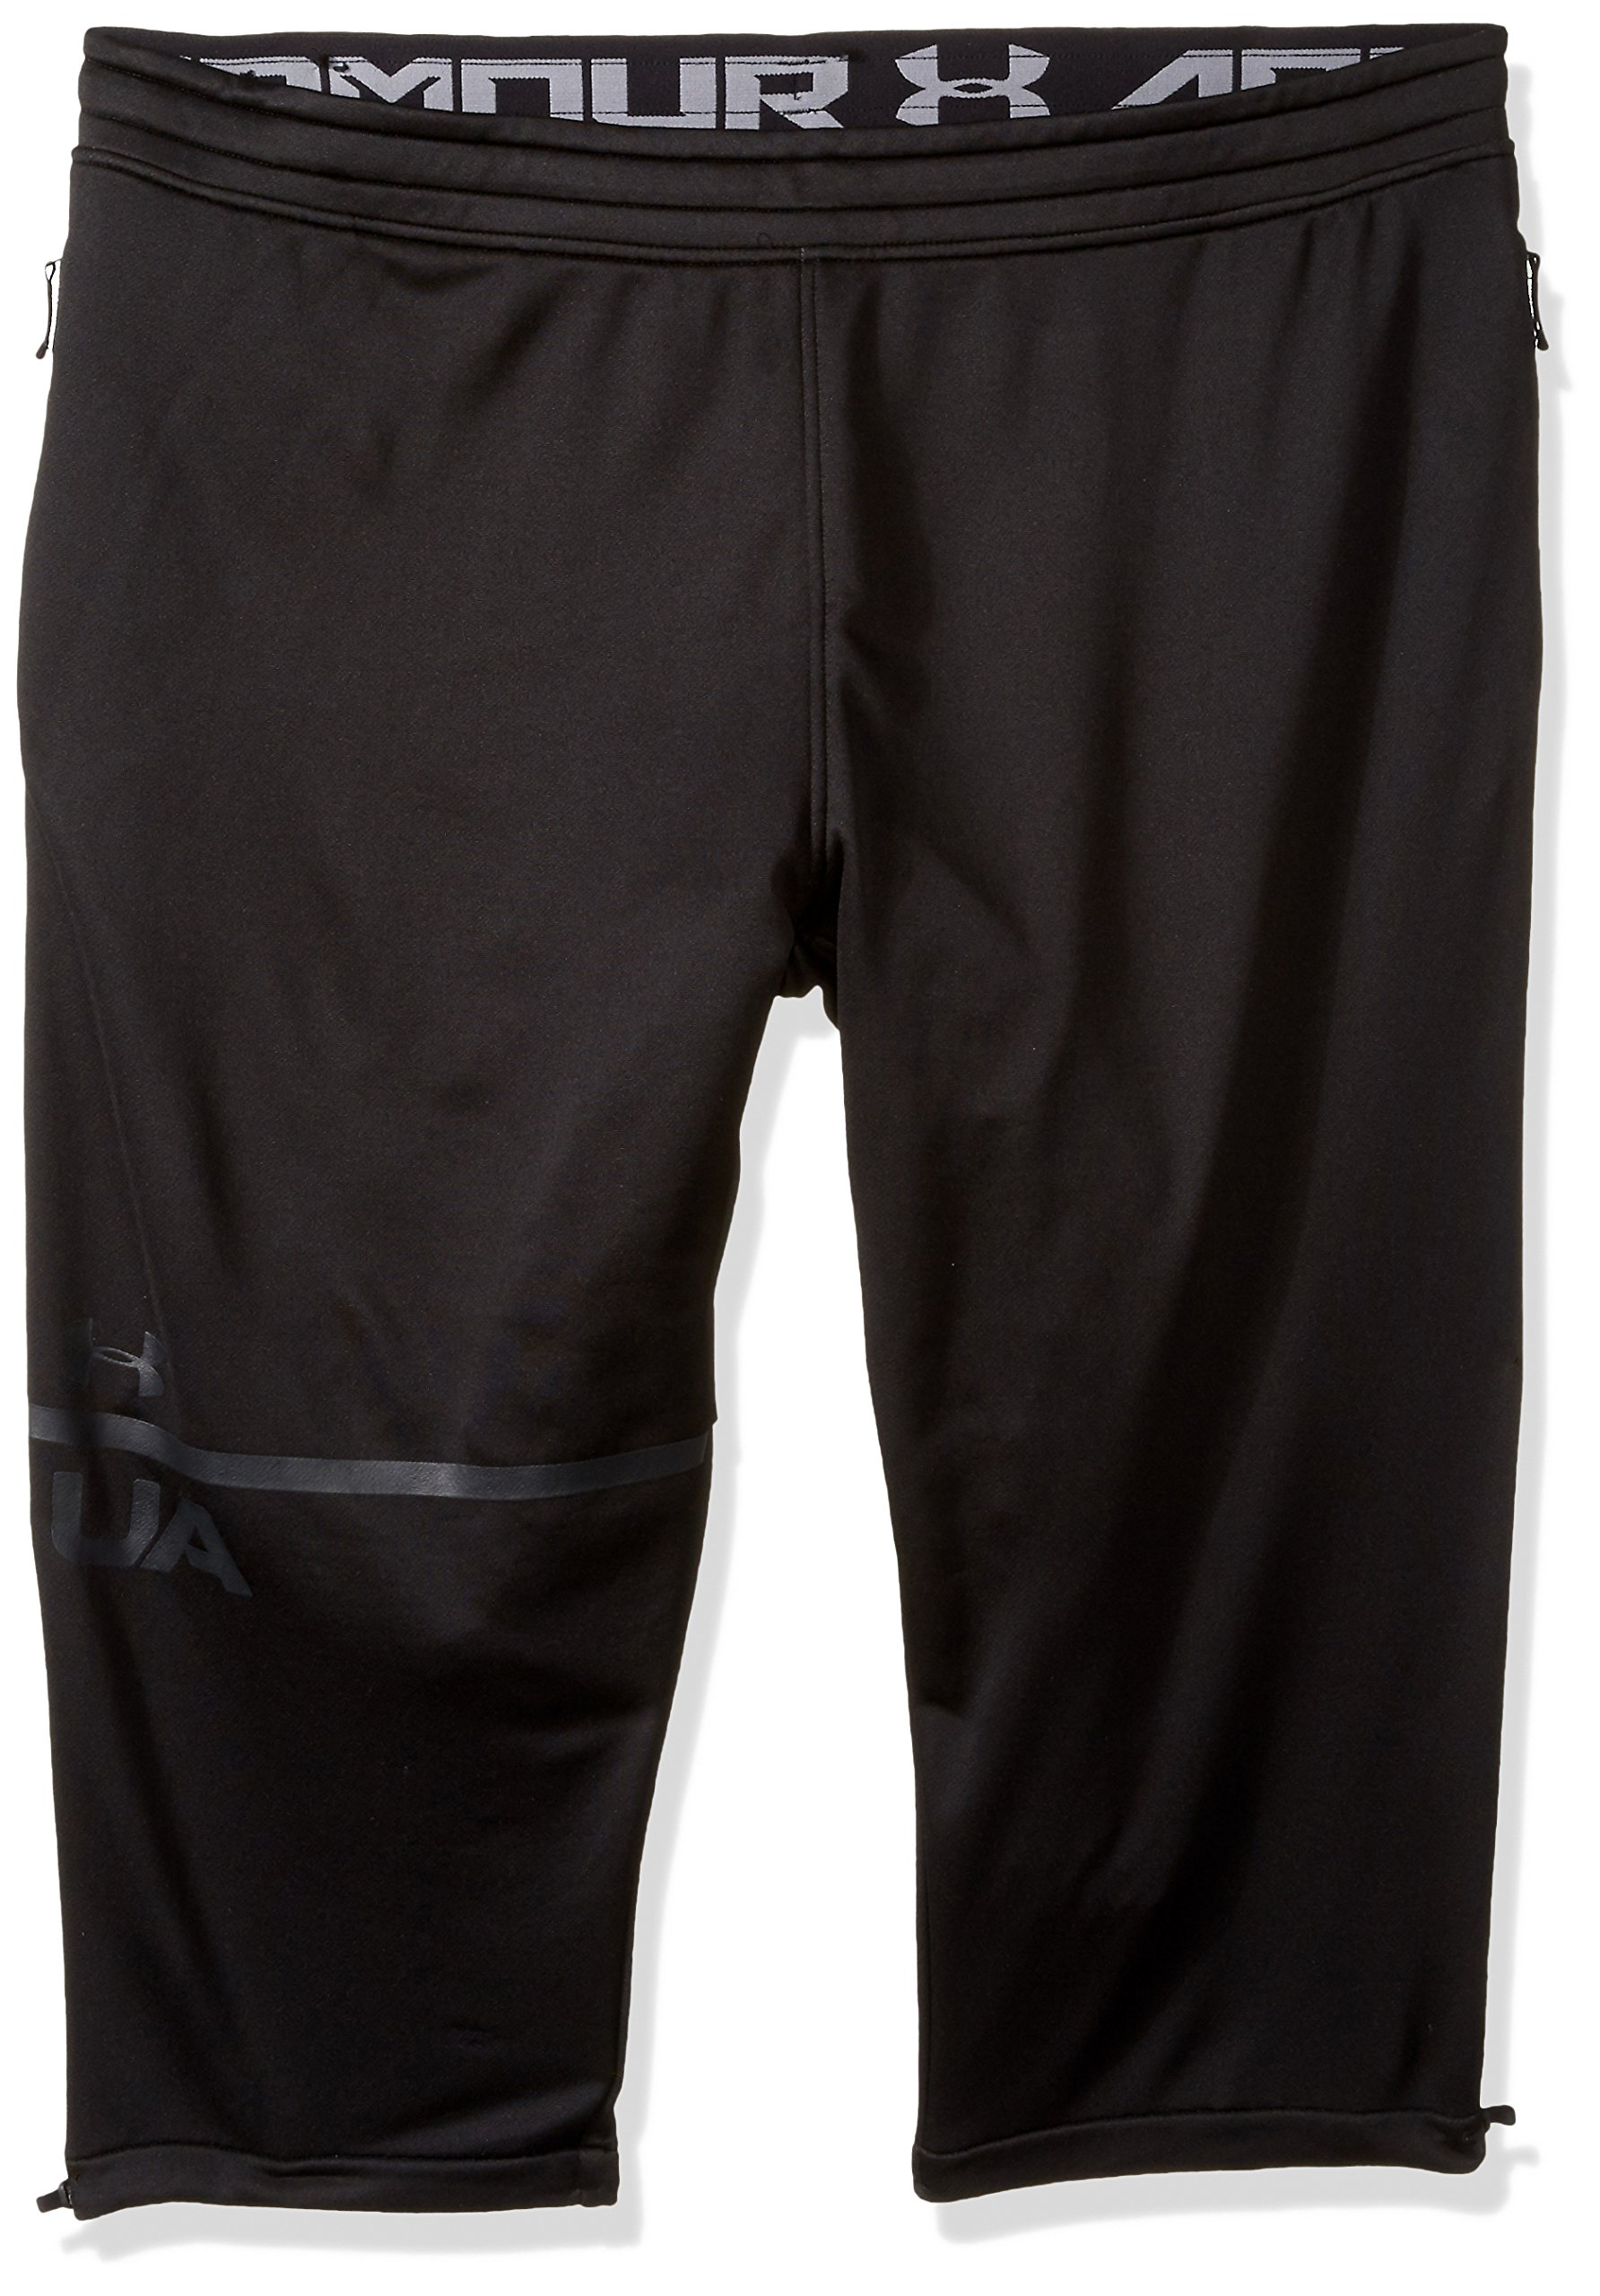 Under Armour Men's MK-1 Terry 3/4 Pants, Black (001)/Anthracite, Small